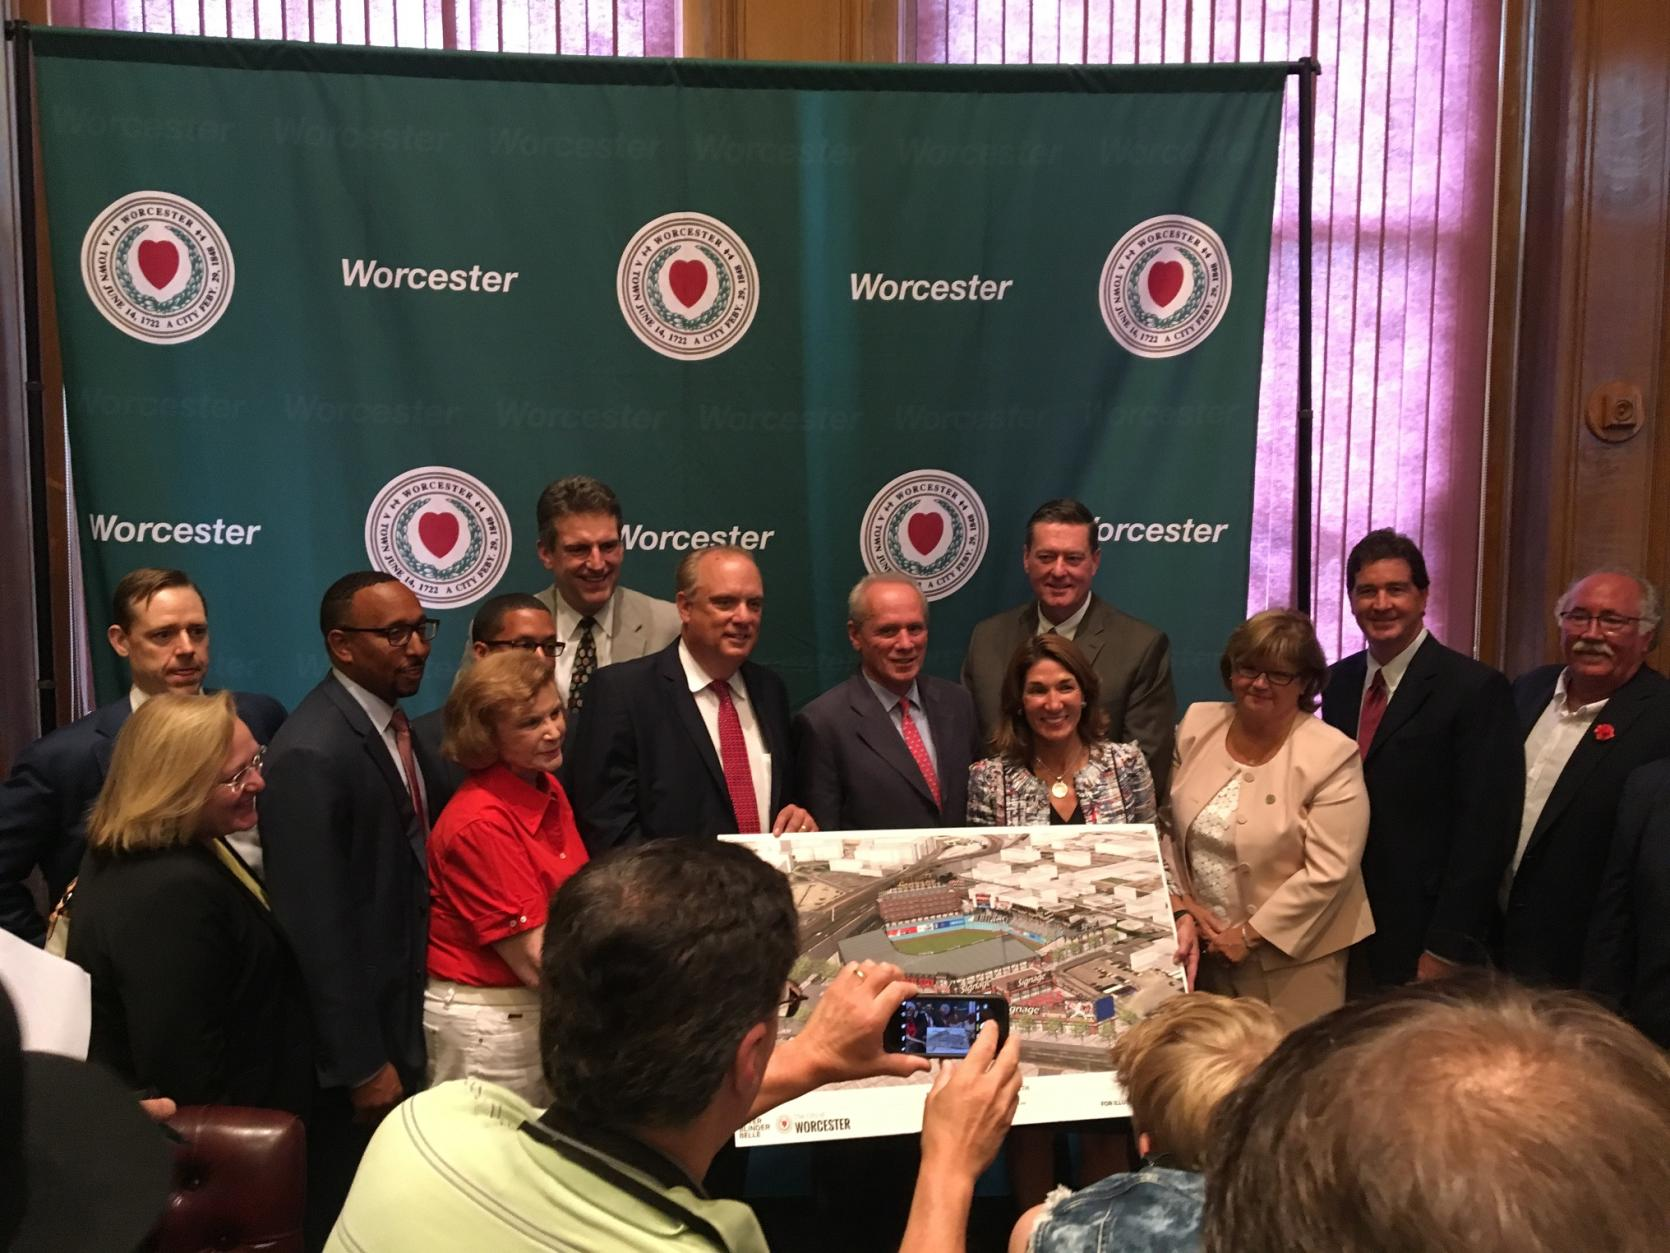 Lt. Governor Karyn Polito and Housing and Economic Development Secretary Jay Ash join state, local and team representatives to unveil a plan that would relocate the Pawtucket Red Sox to Worcester's Canal District.